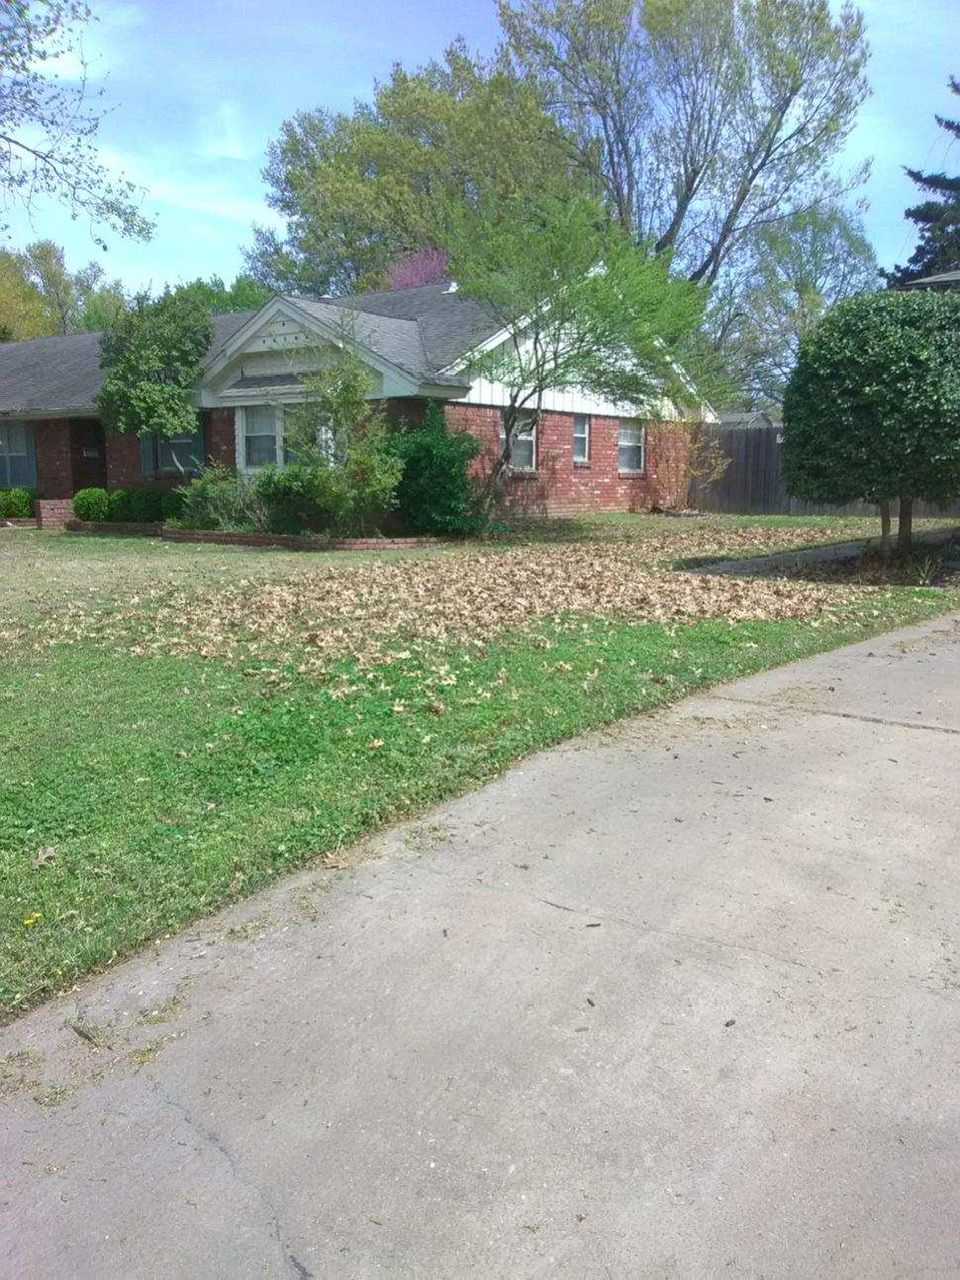 Mowing service with leaf mulching